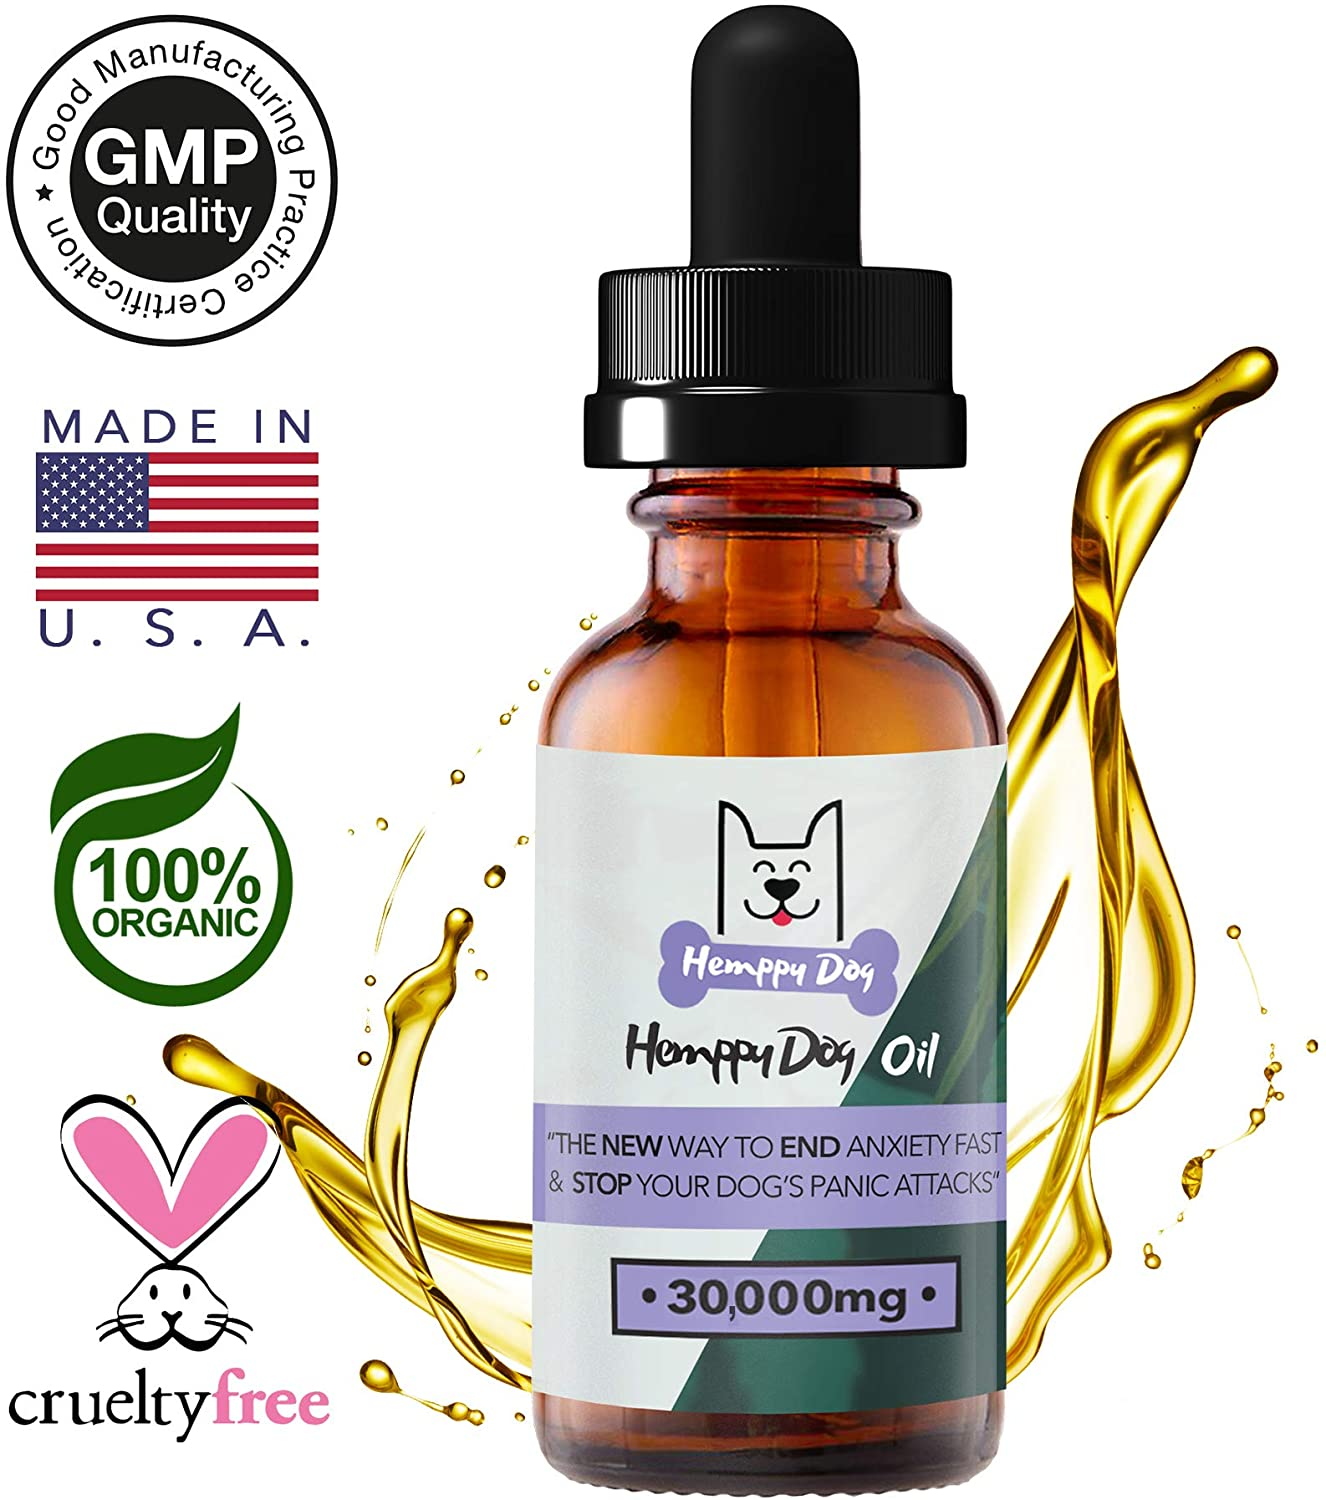 HEMPPY DOG Hemp Oil for Dogs, Anxiety, Stress Relief, Calming Organic Oil, Excellent in Aiding Separation Anxiety, Seizures, Chronic Pains, Anti Inflammatory, Irritations, Joint Pain from Arthritis